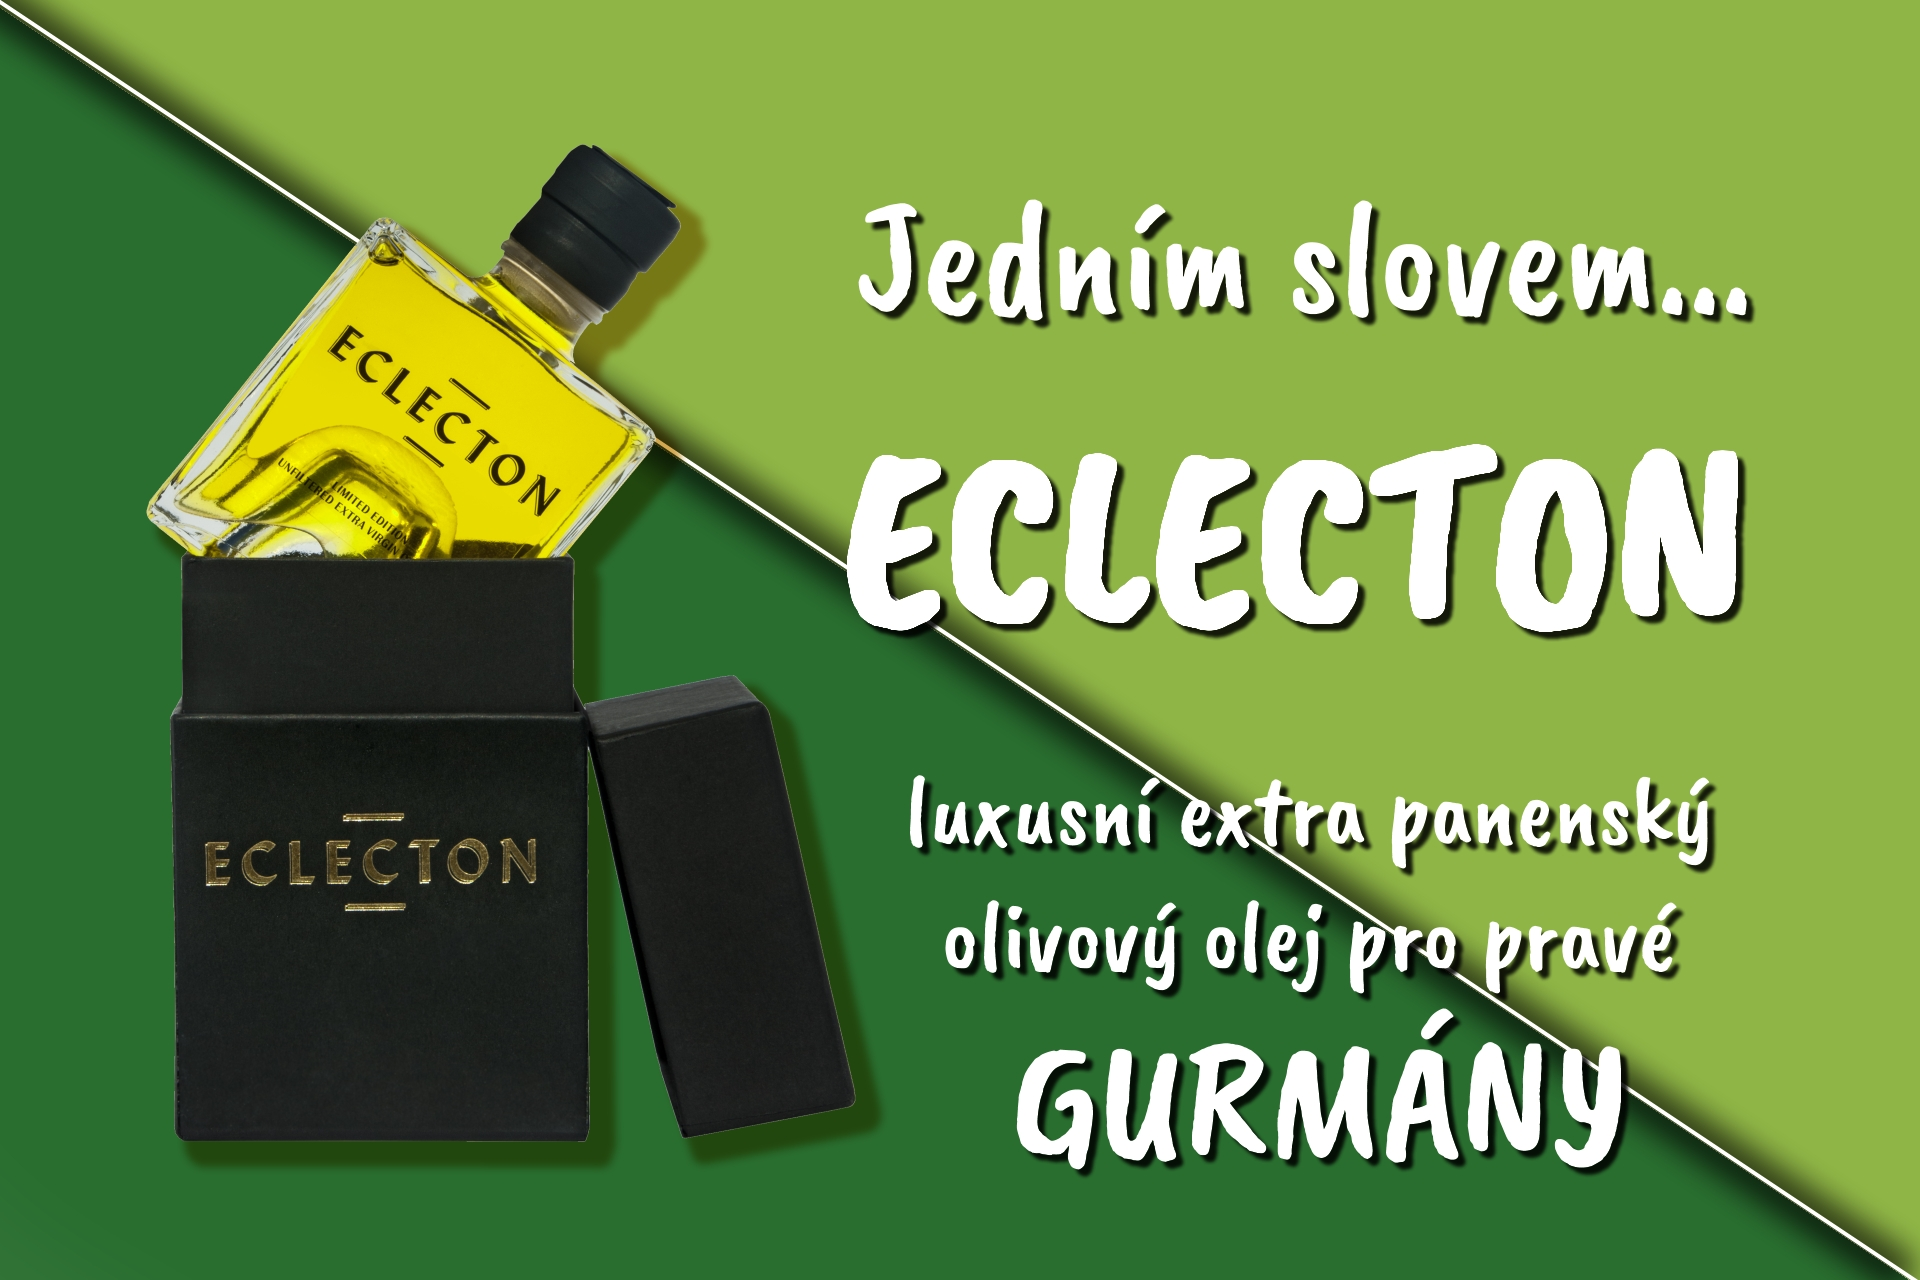 Eclecton